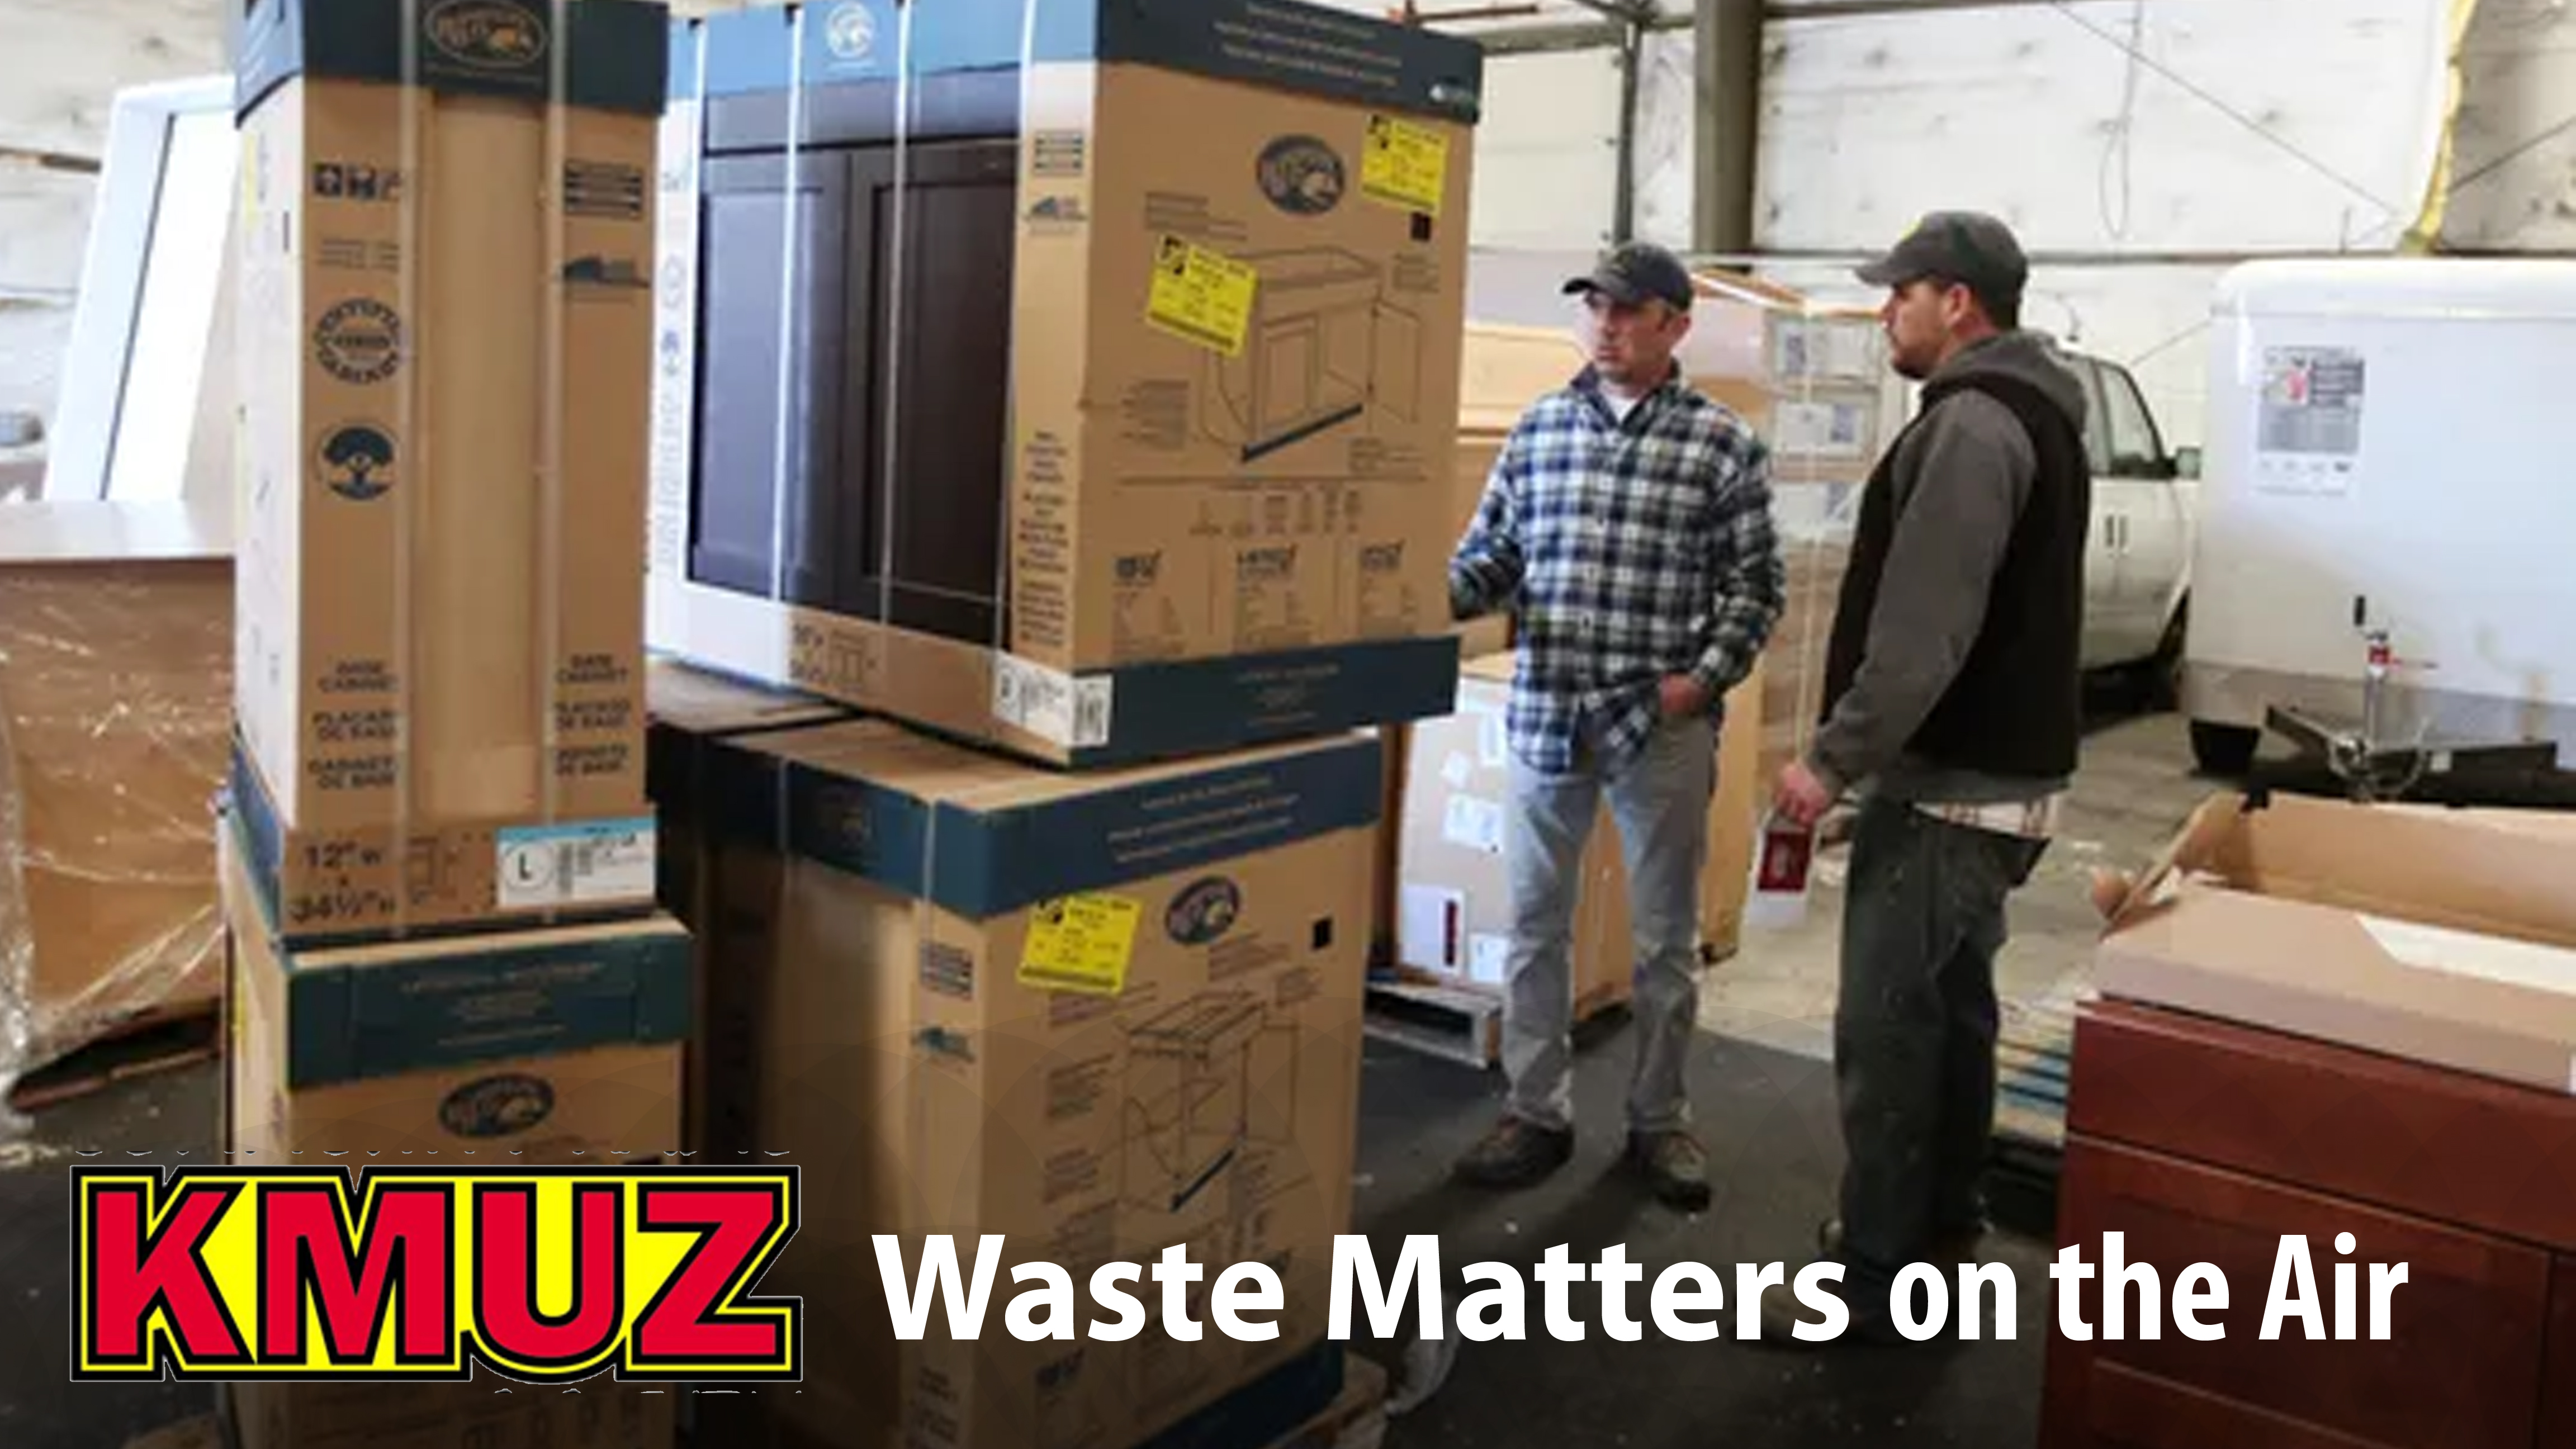 KMUZ Waste Matters on the Air